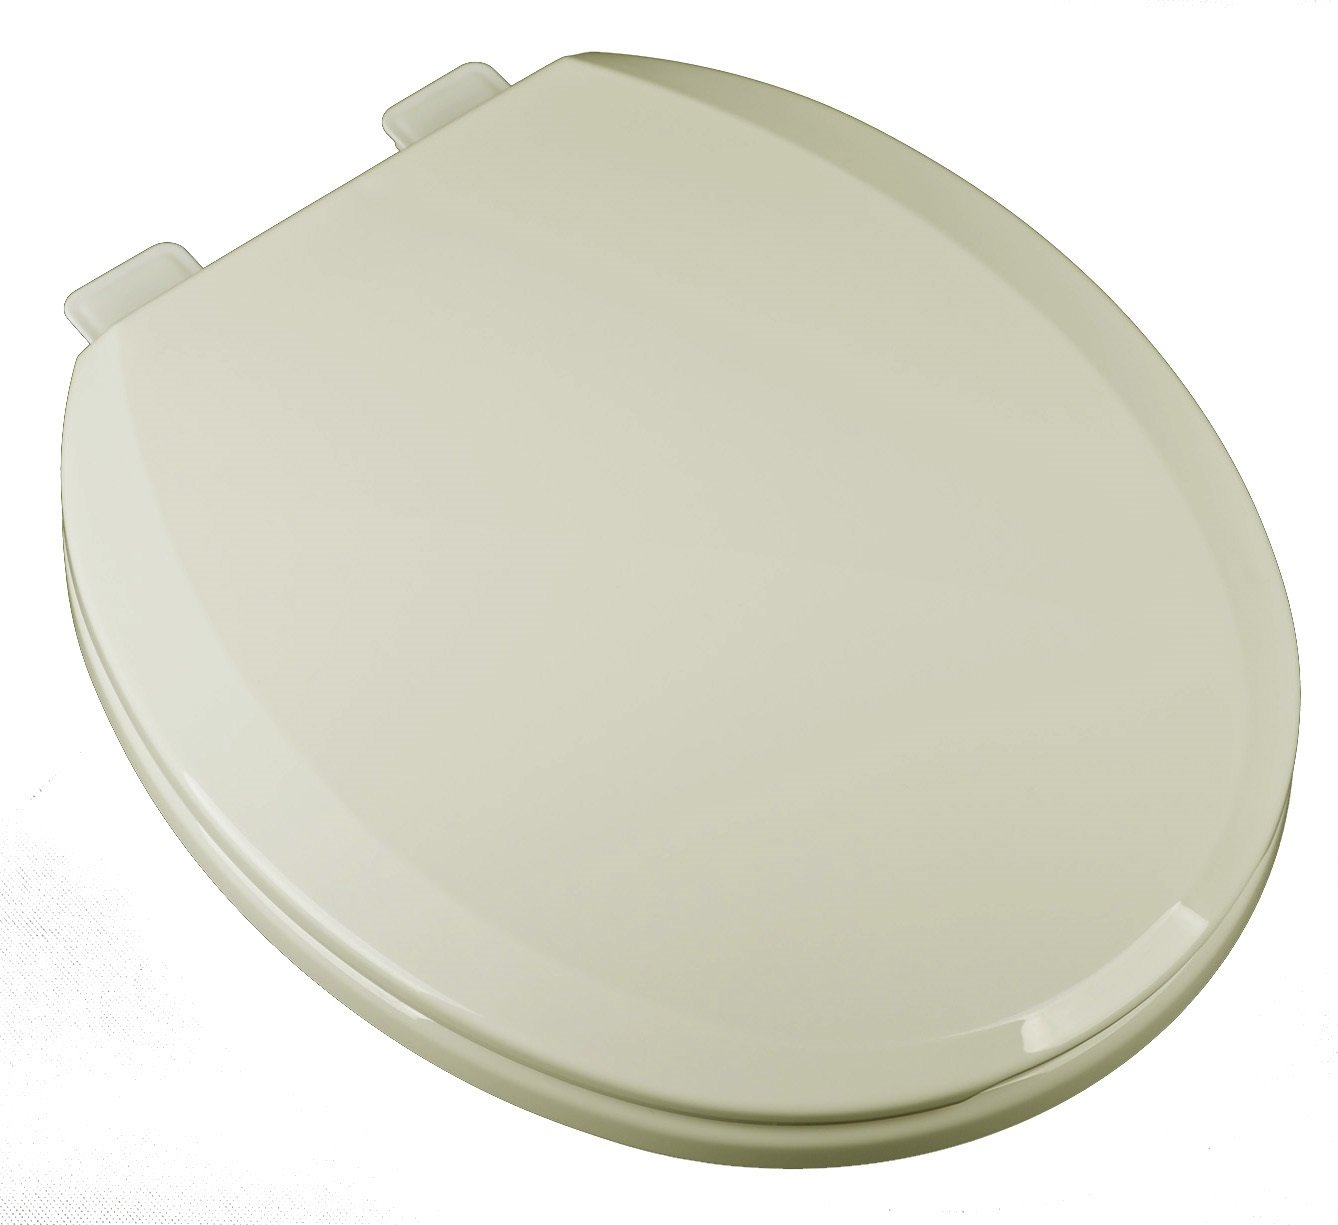 Bath Décor 2F1R7-01 Deluxe Slow Close Round Top Mount Toilet Seat with Adjustable Release and Clean Hinge by Bath Décor